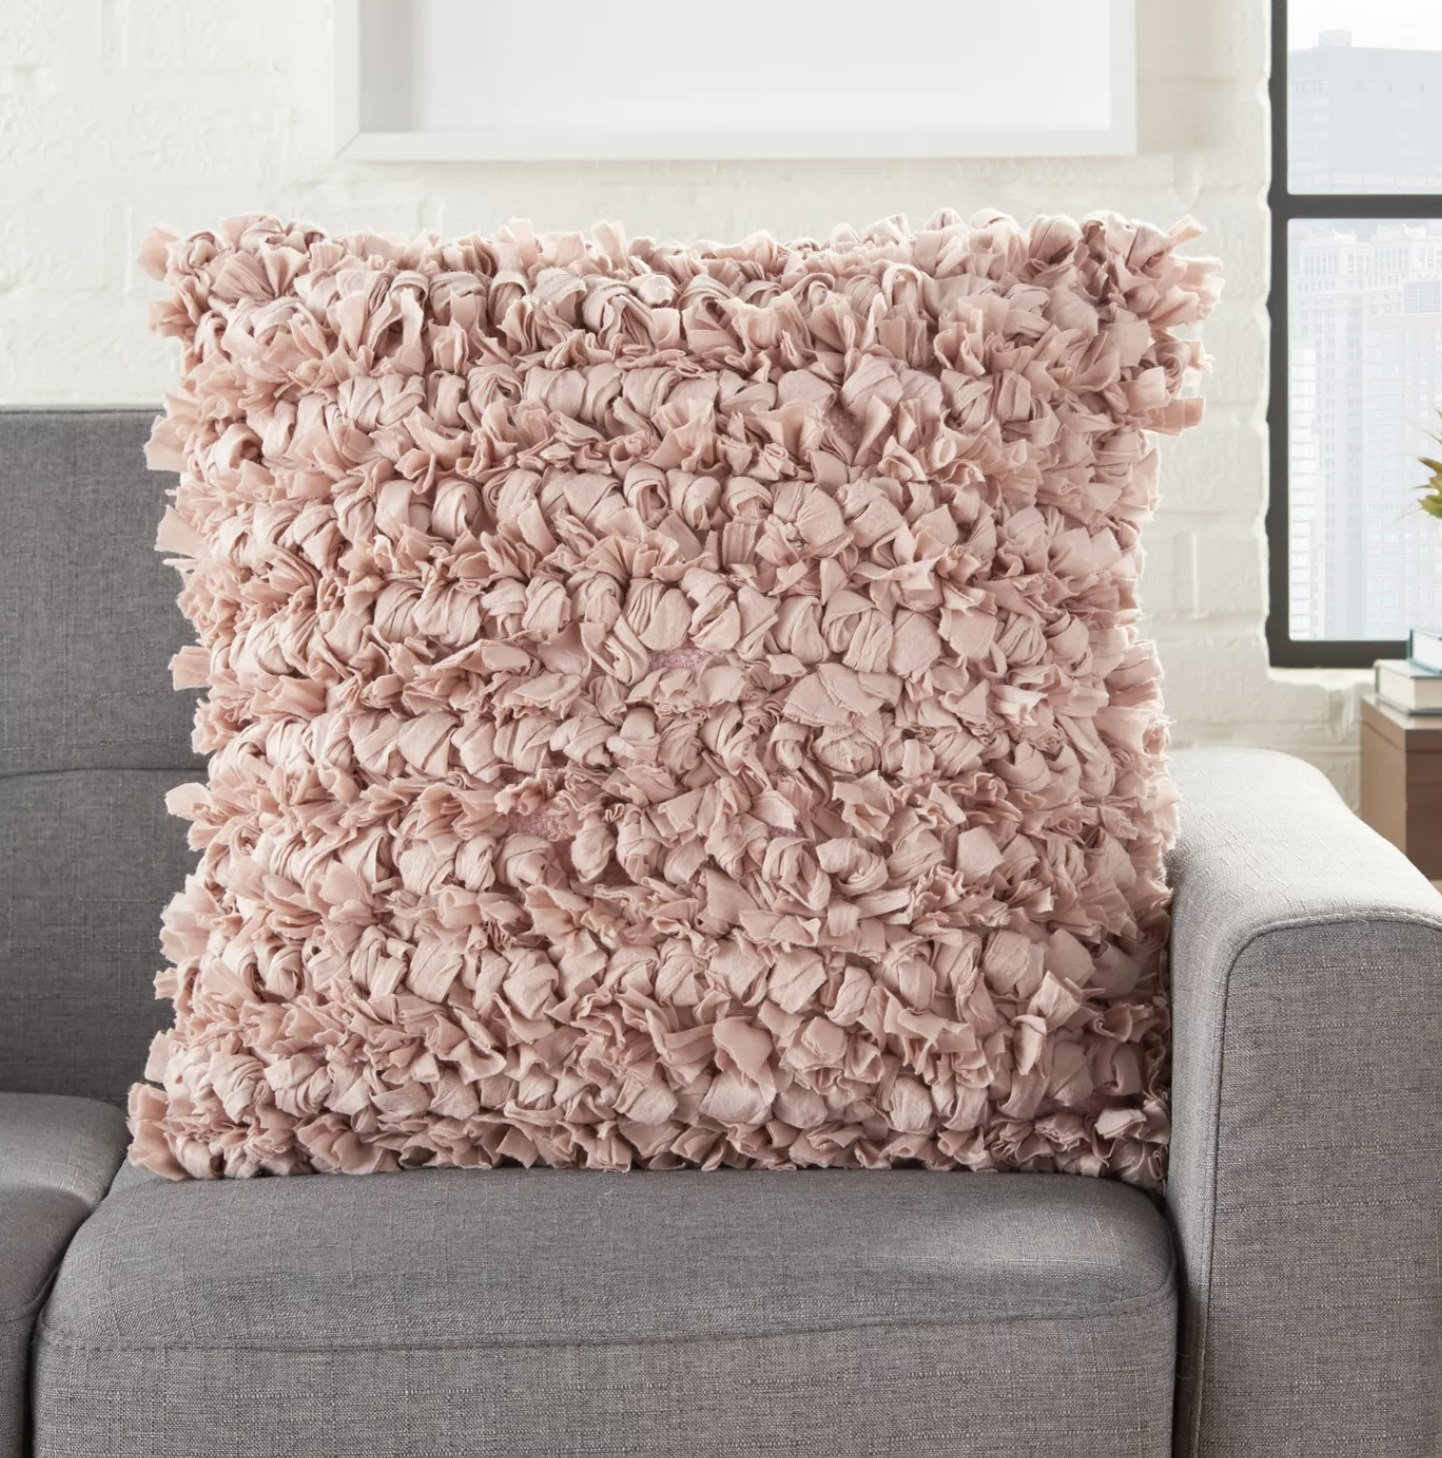 A blush pink loop shag throw pillow on a couch